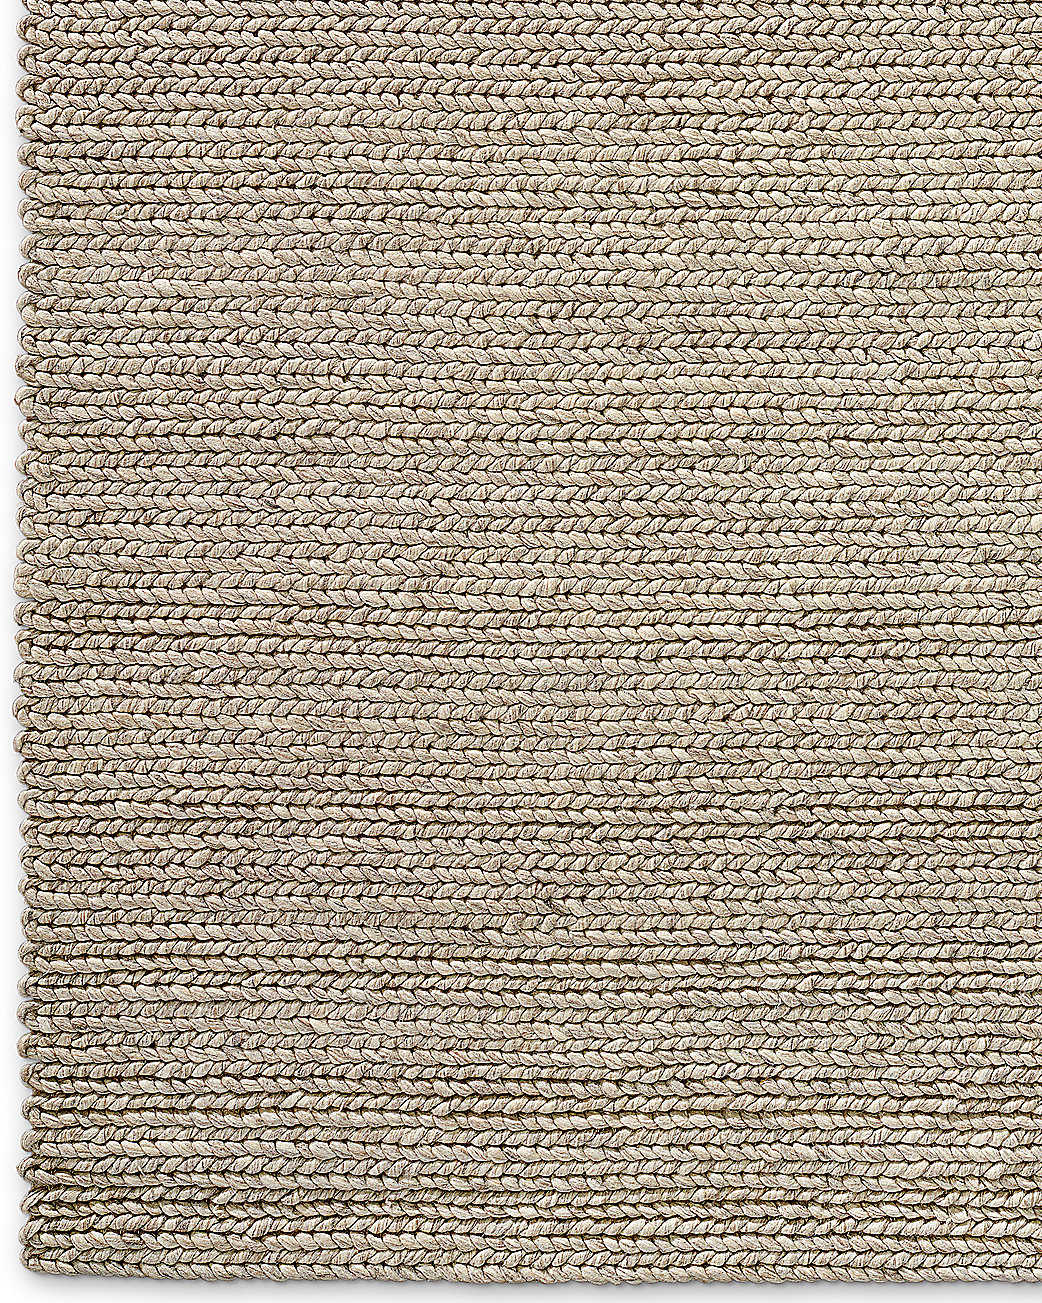 Chunky Braided Wool Rug Marled